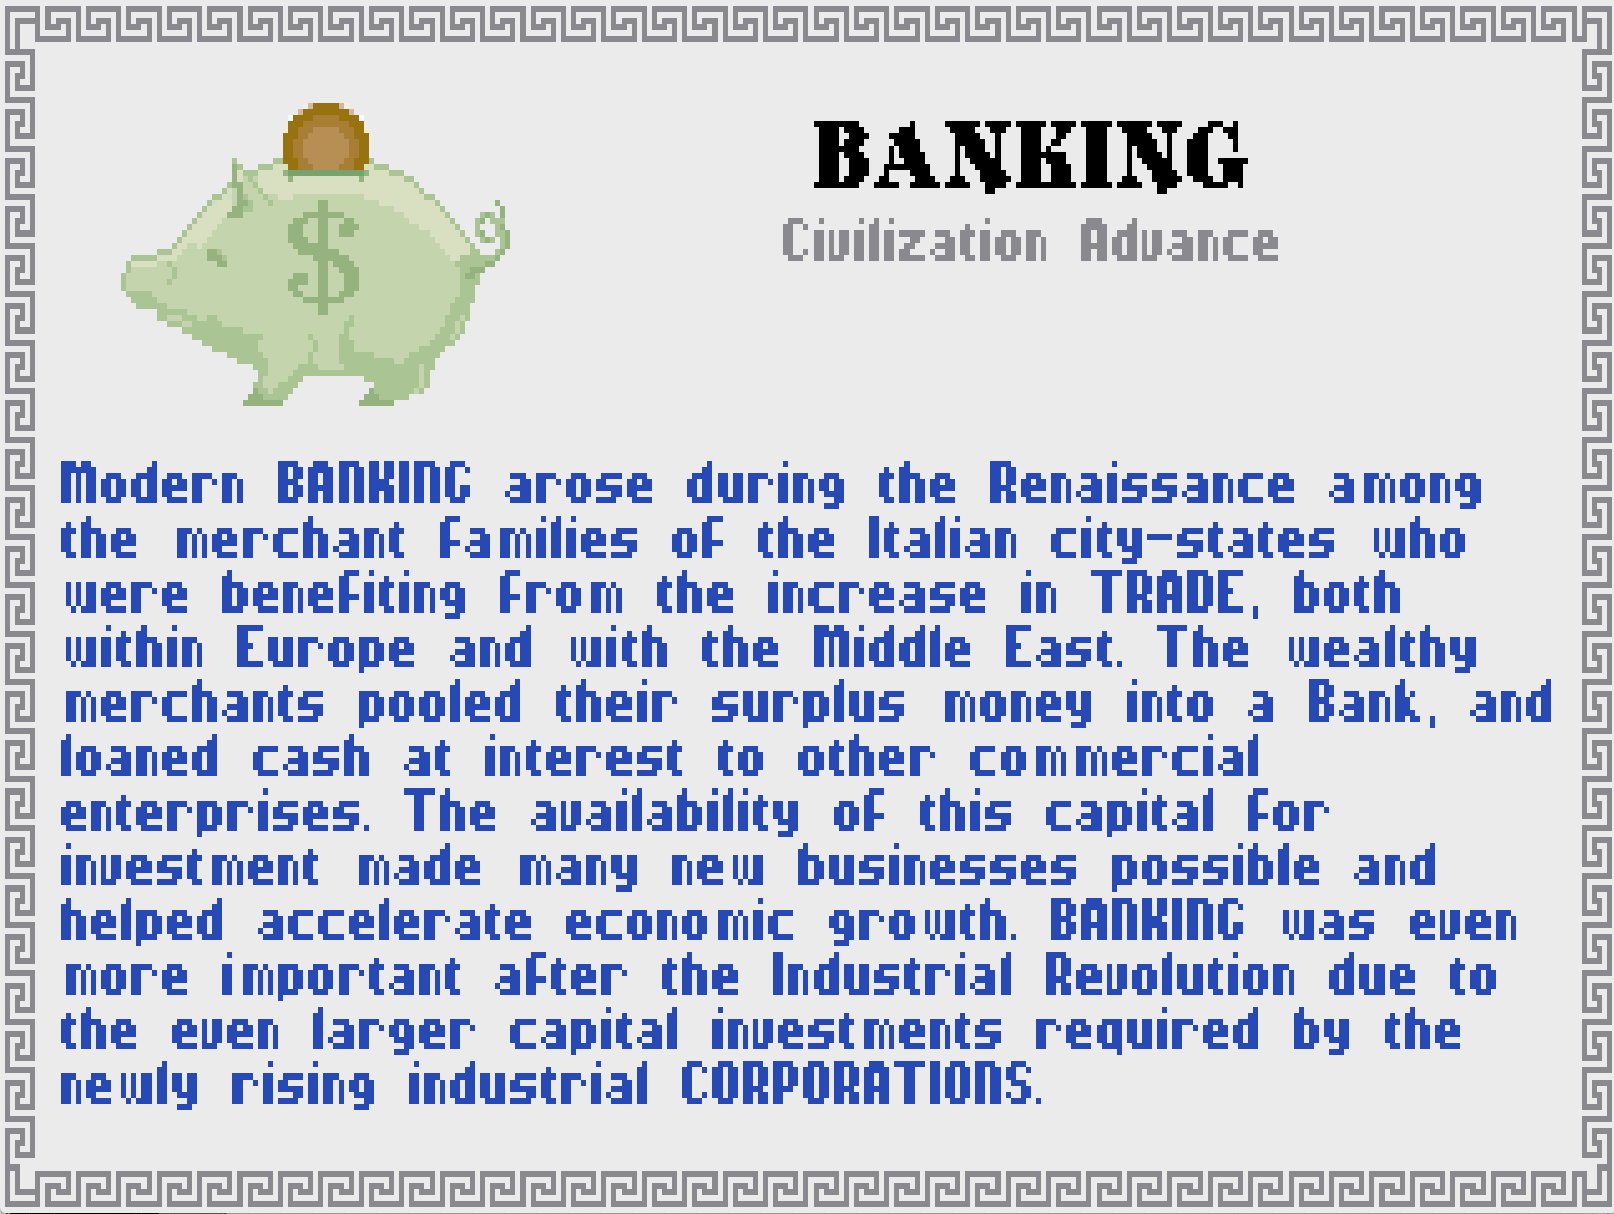 Learning vocabulary is one of the ways that video games are good for you. The Civilopedia entry for Banking, page 1, which even mentions interest, from the video game Civilization.